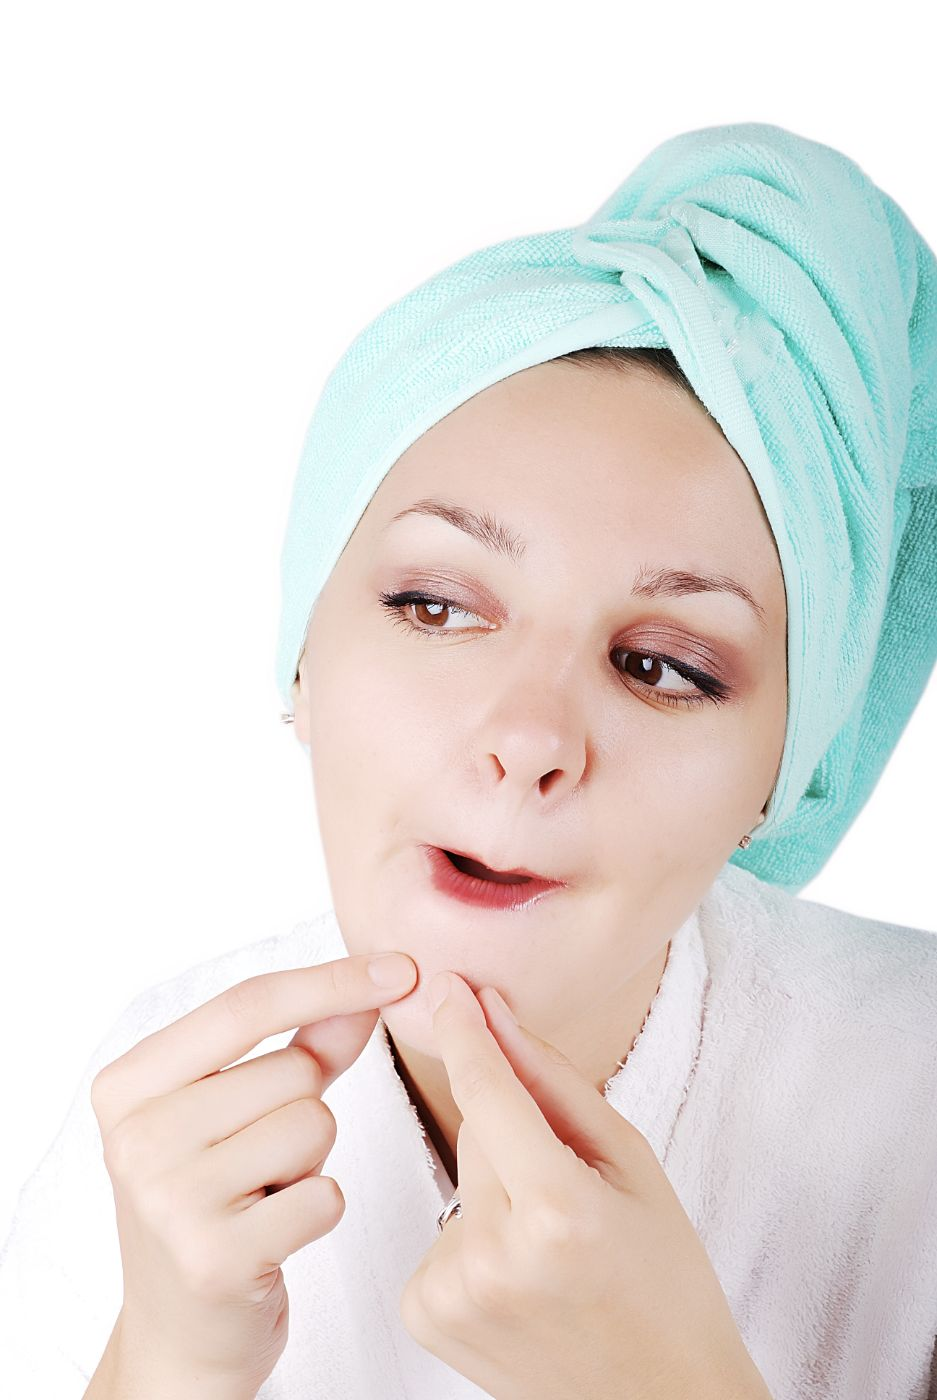 Acne Treatment Dr Heimer